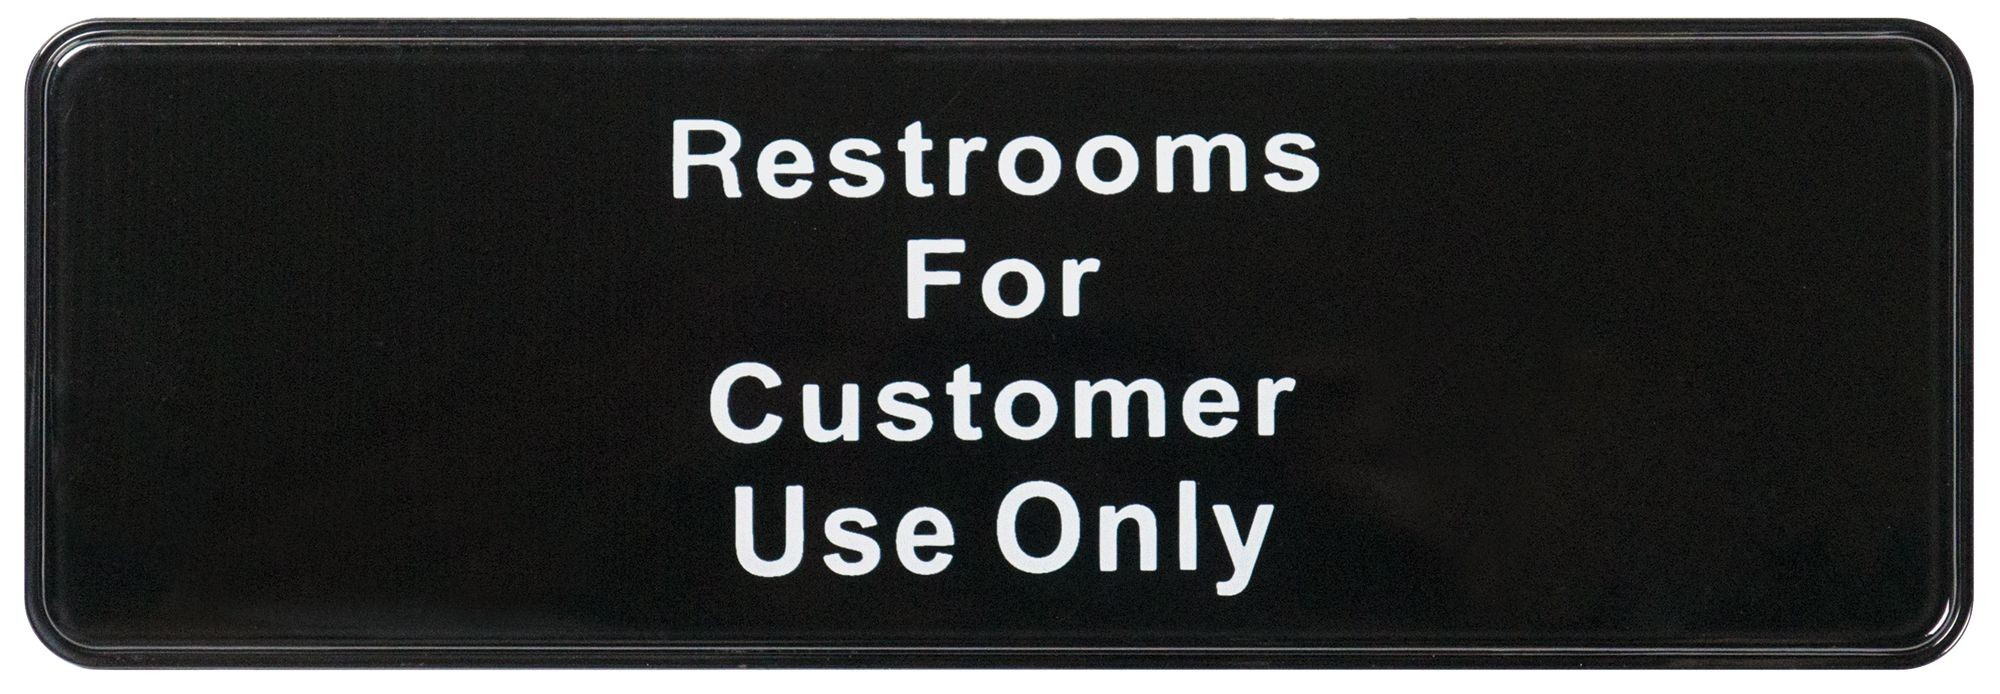 "Winco SGN-317 ""Restrooms for Customer Use Only"" Informational Sign, 9"" x 3"""